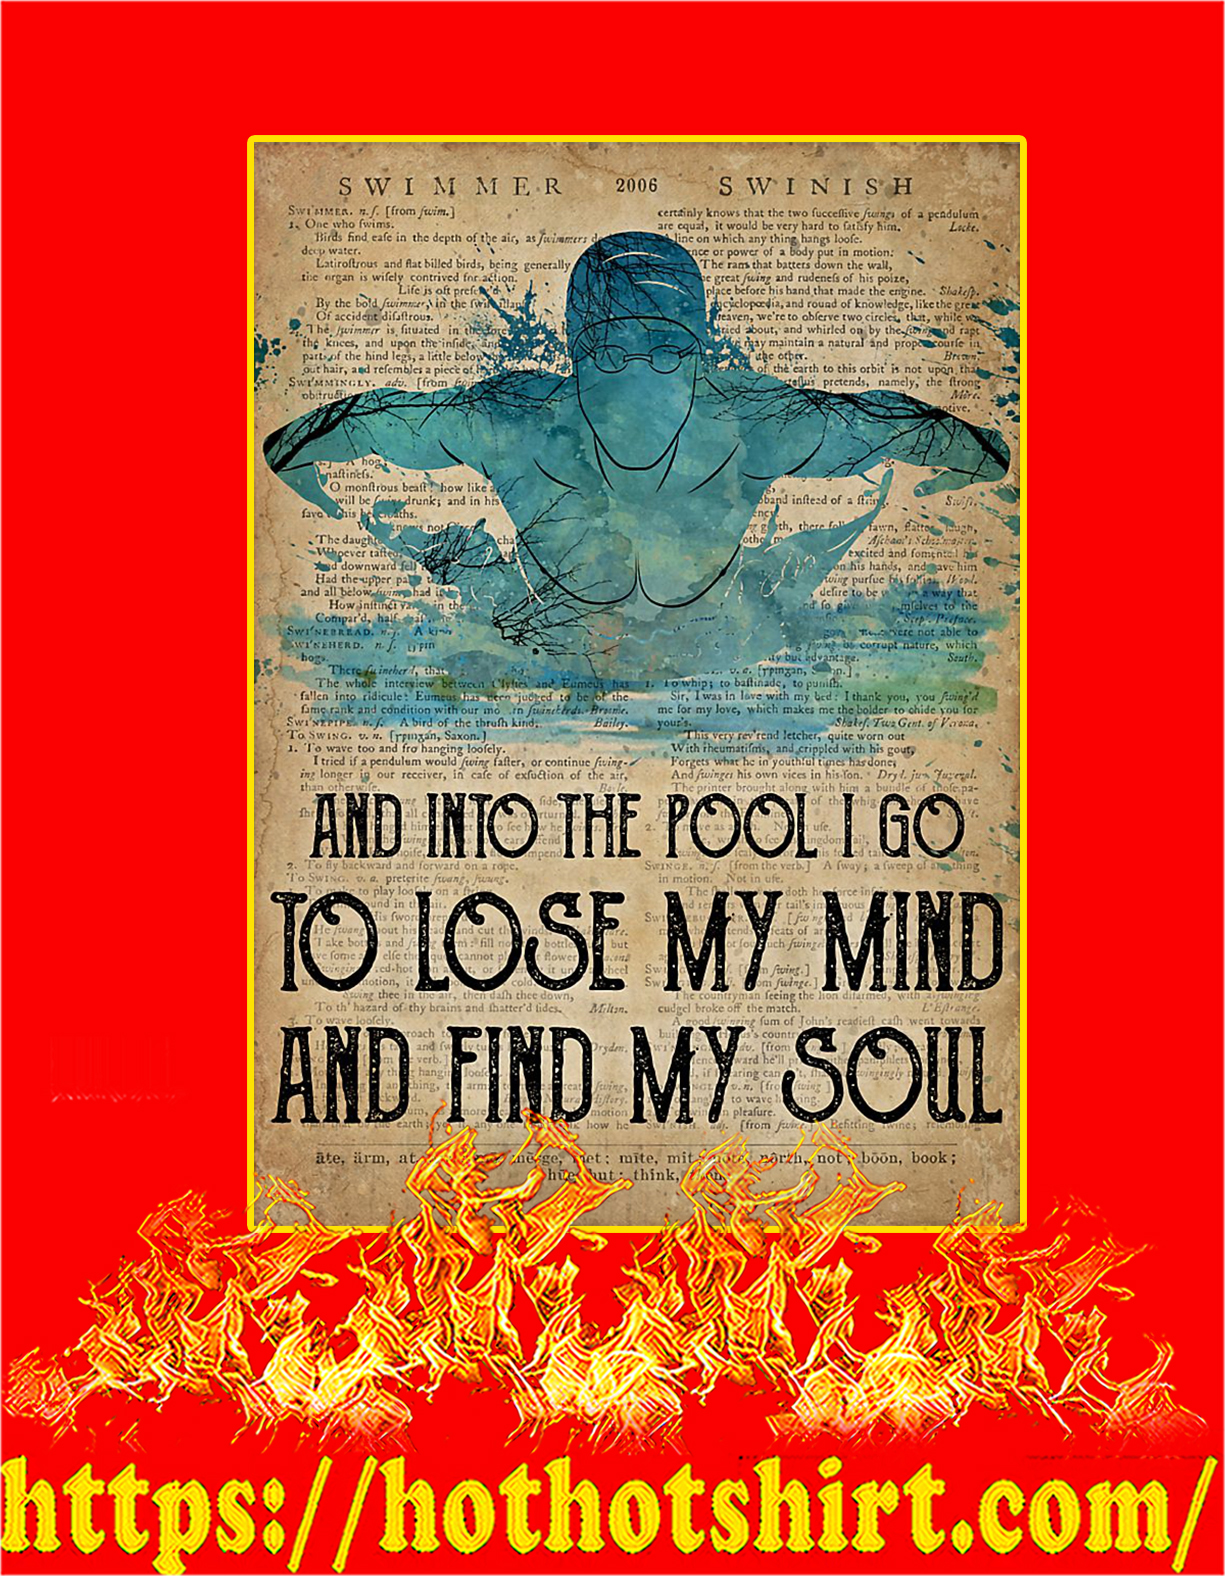 Swimming to loose my mind and find my soul poster - A4